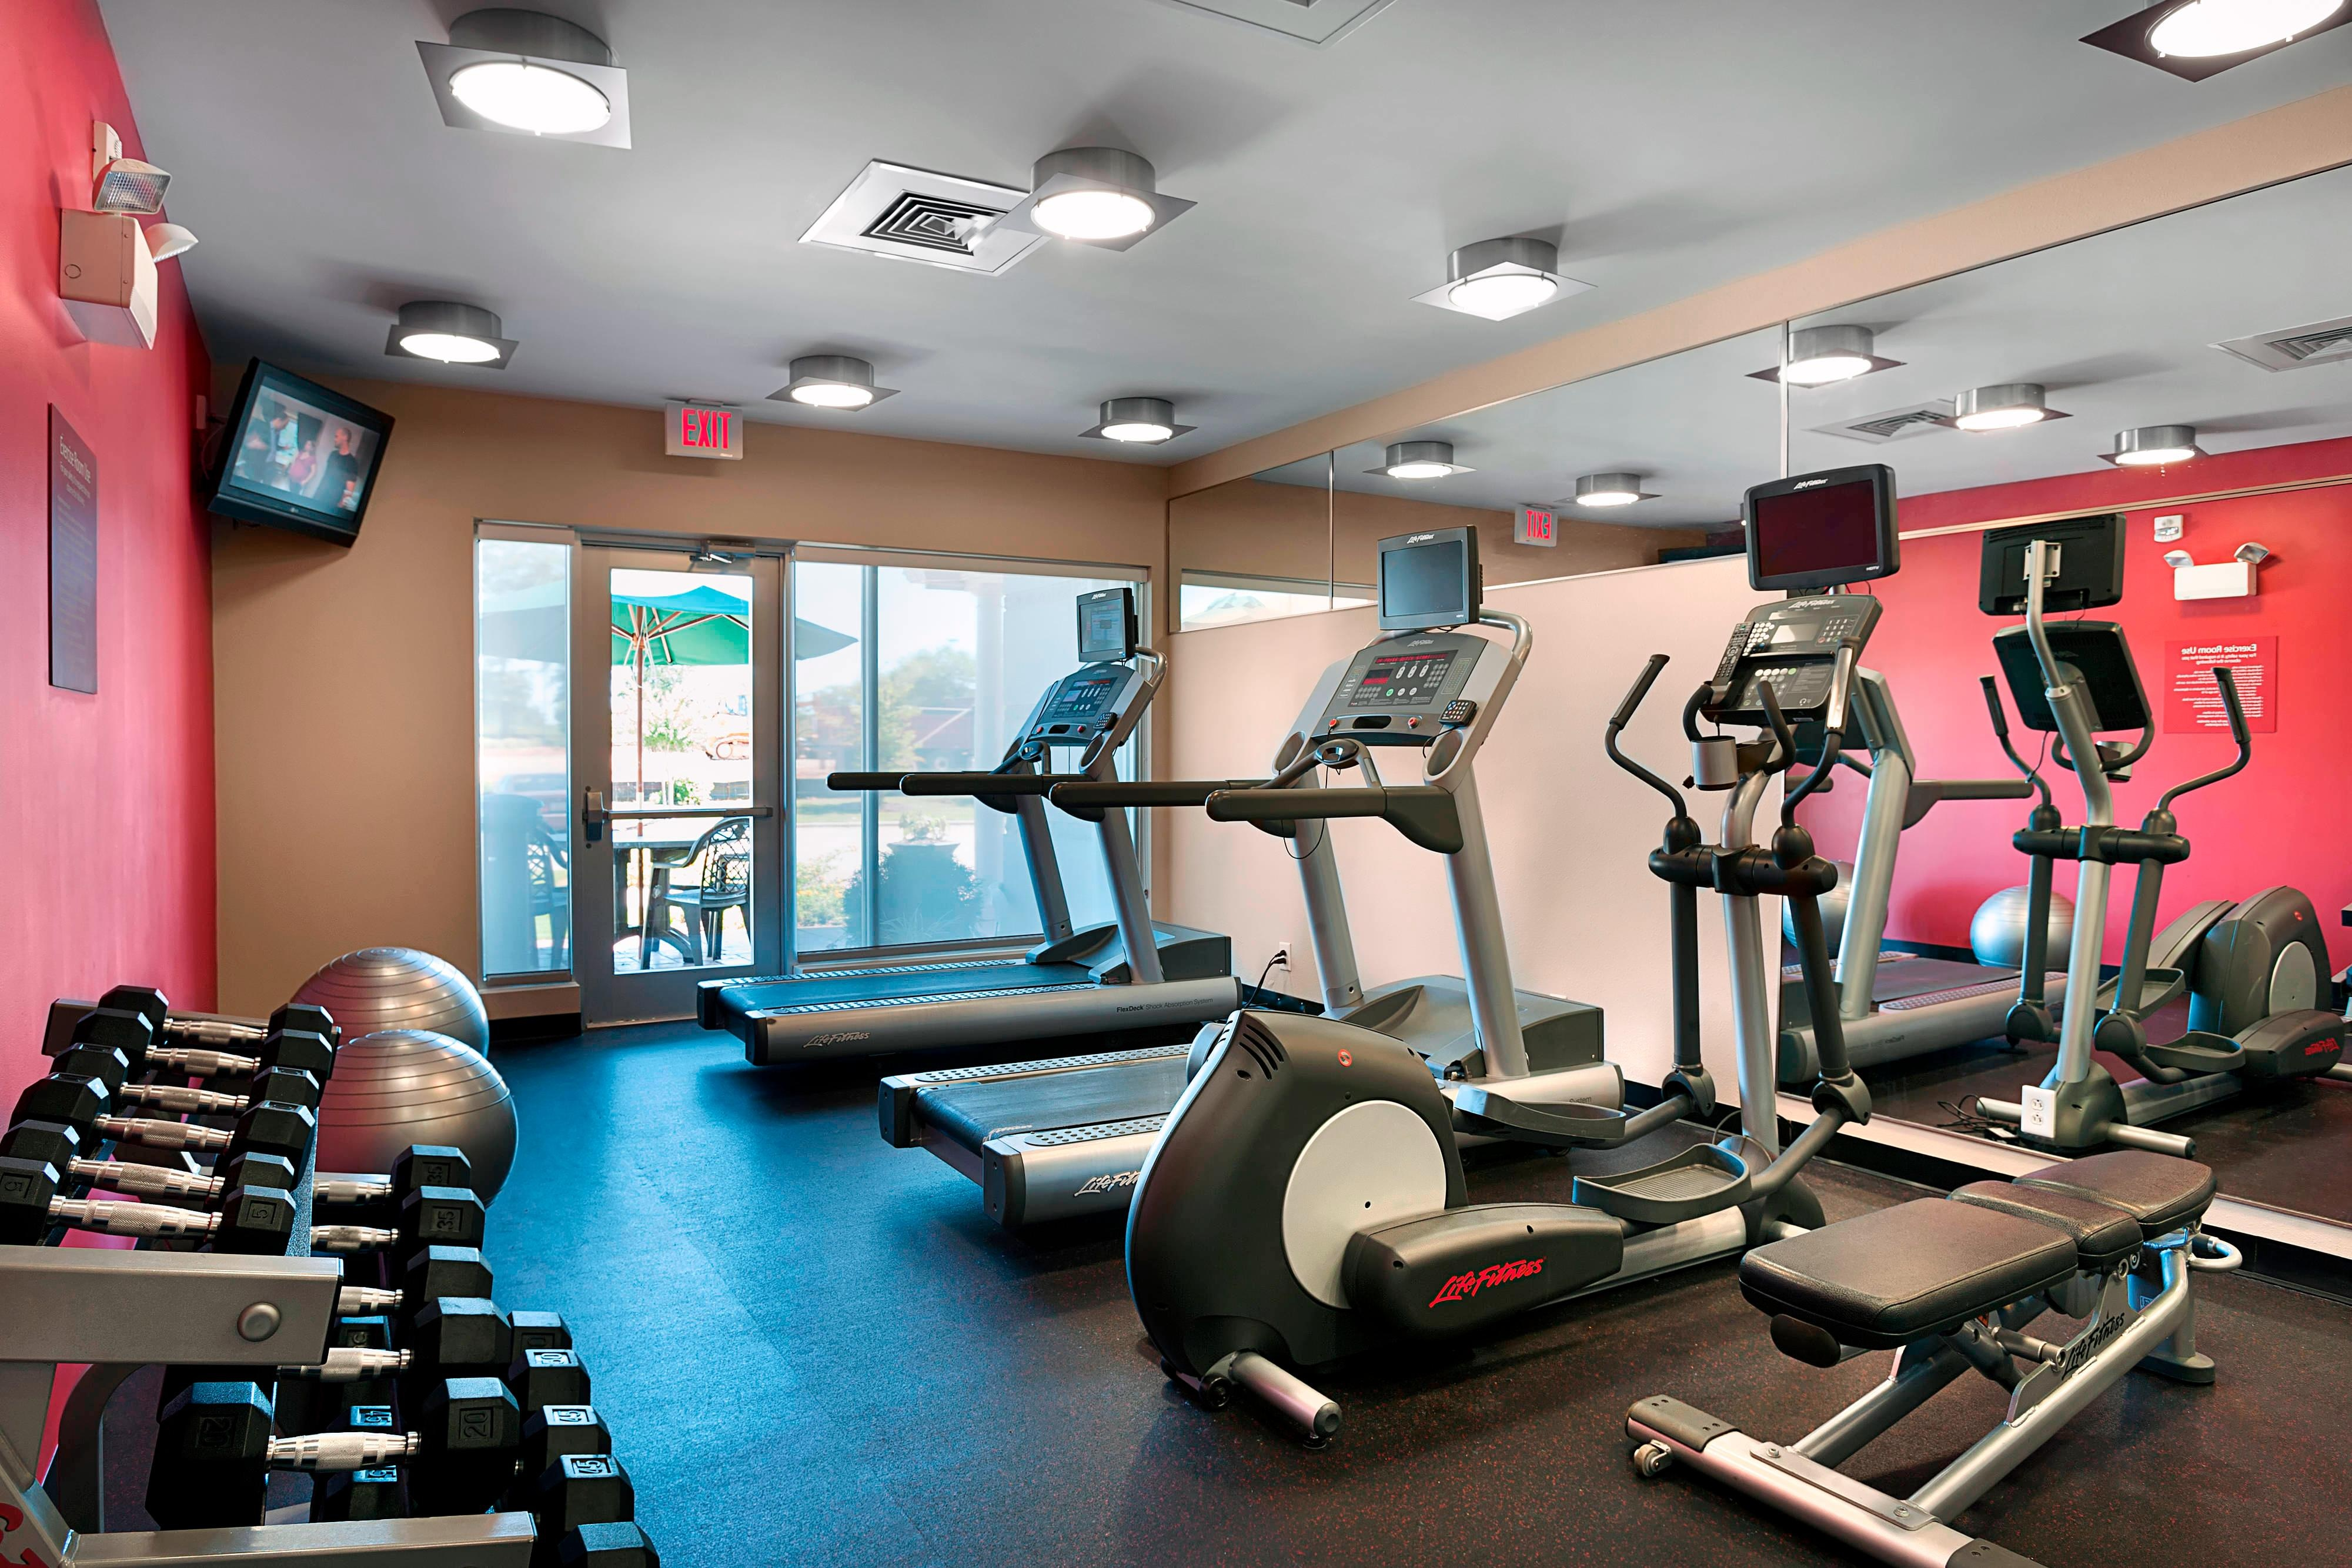 TownePlace Suites of Rock Hill Fitness Center